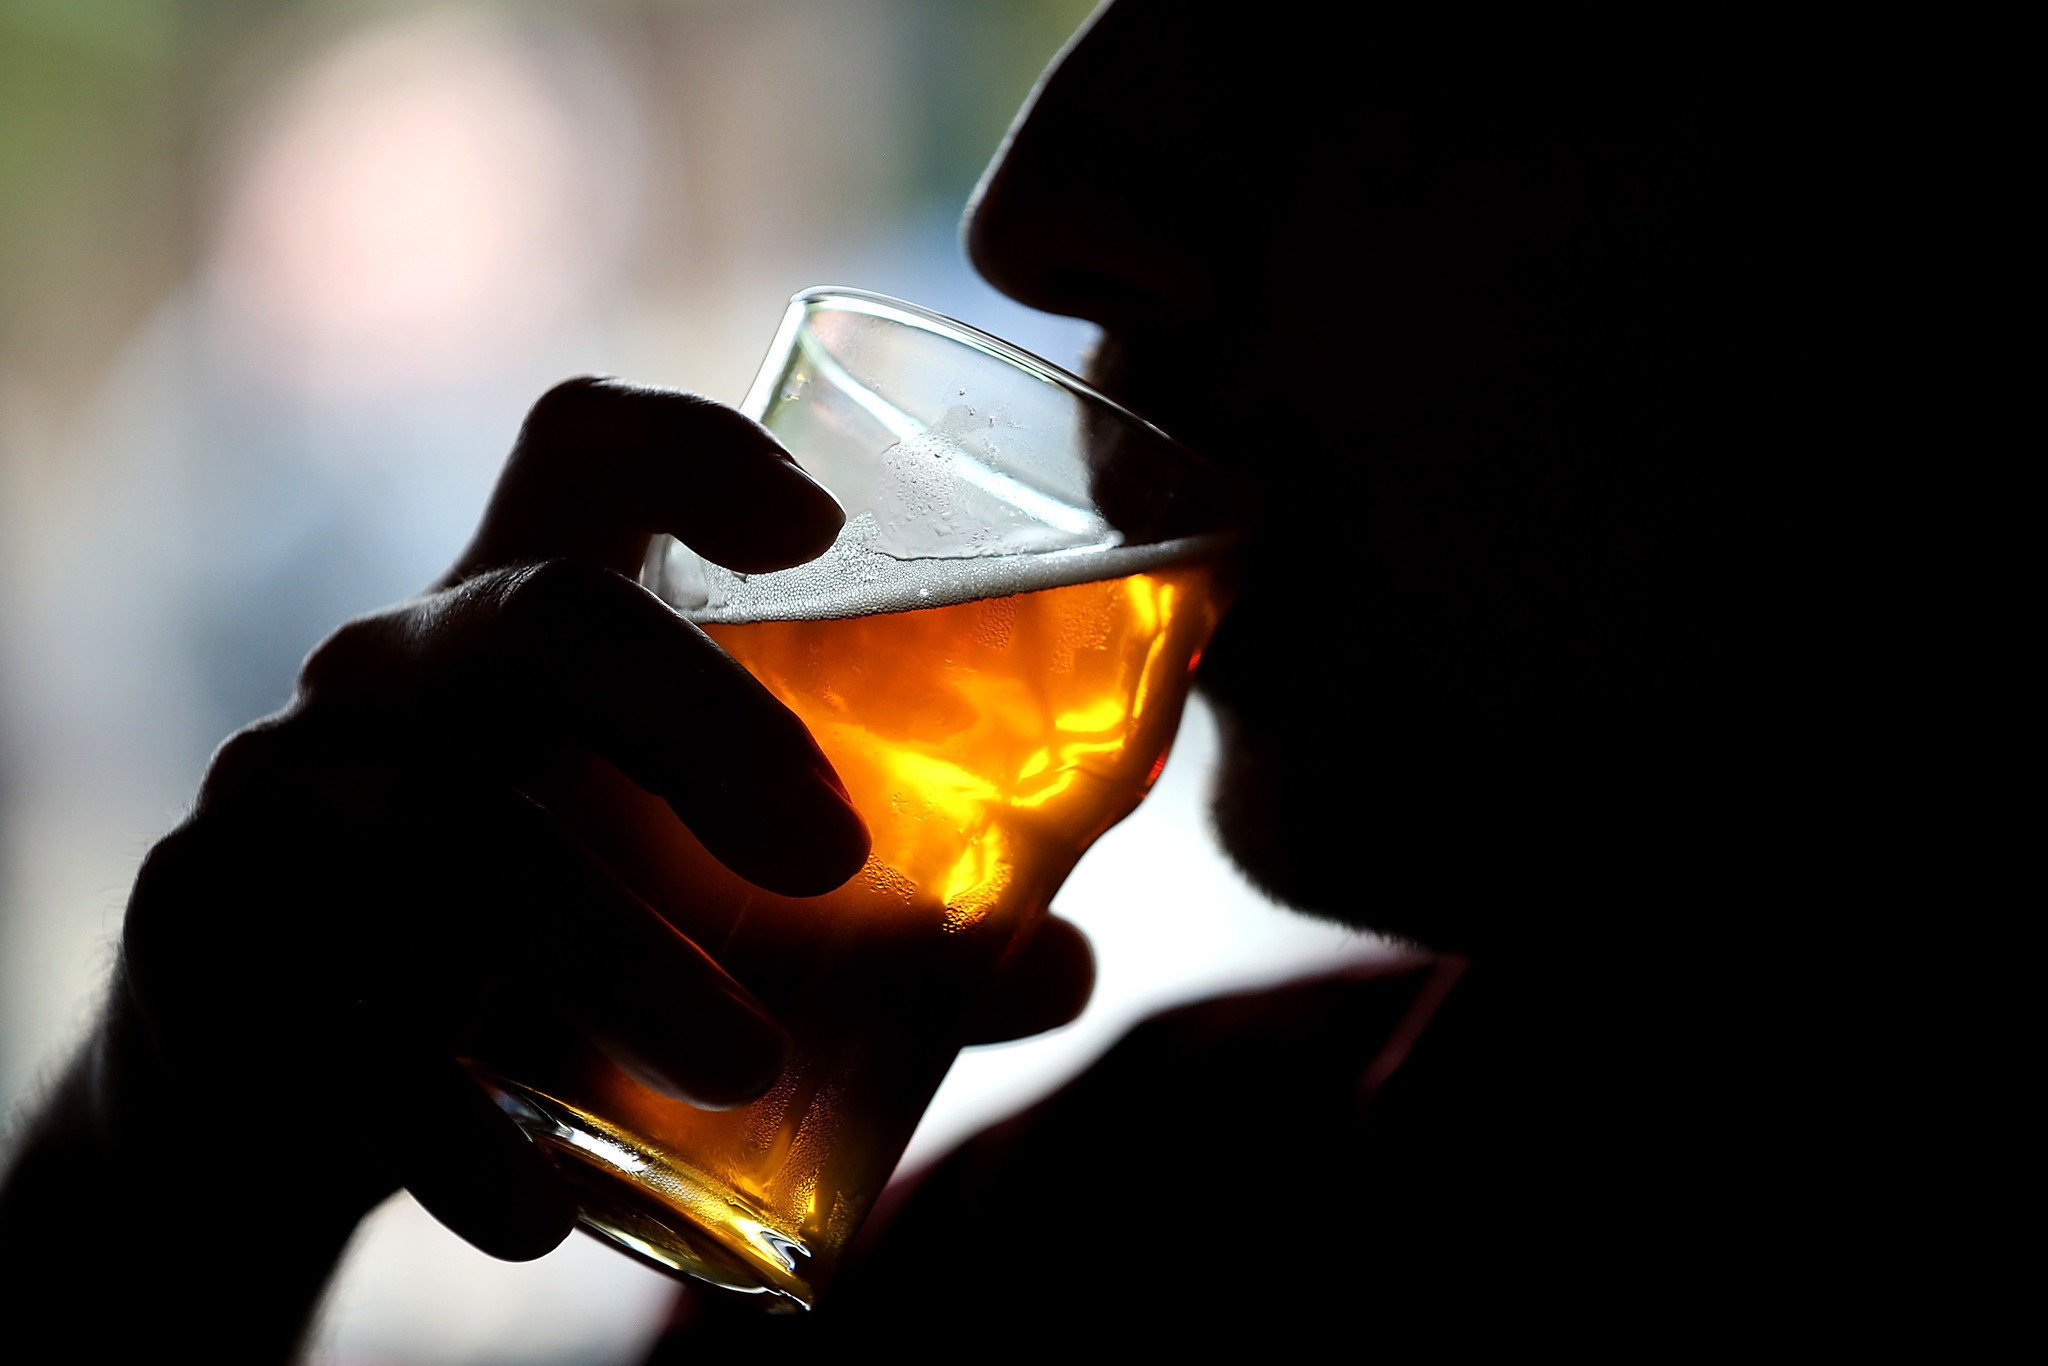 Fraternity brothers resist efforts to curb alcohol consumption, study says - Orlando Sentinel